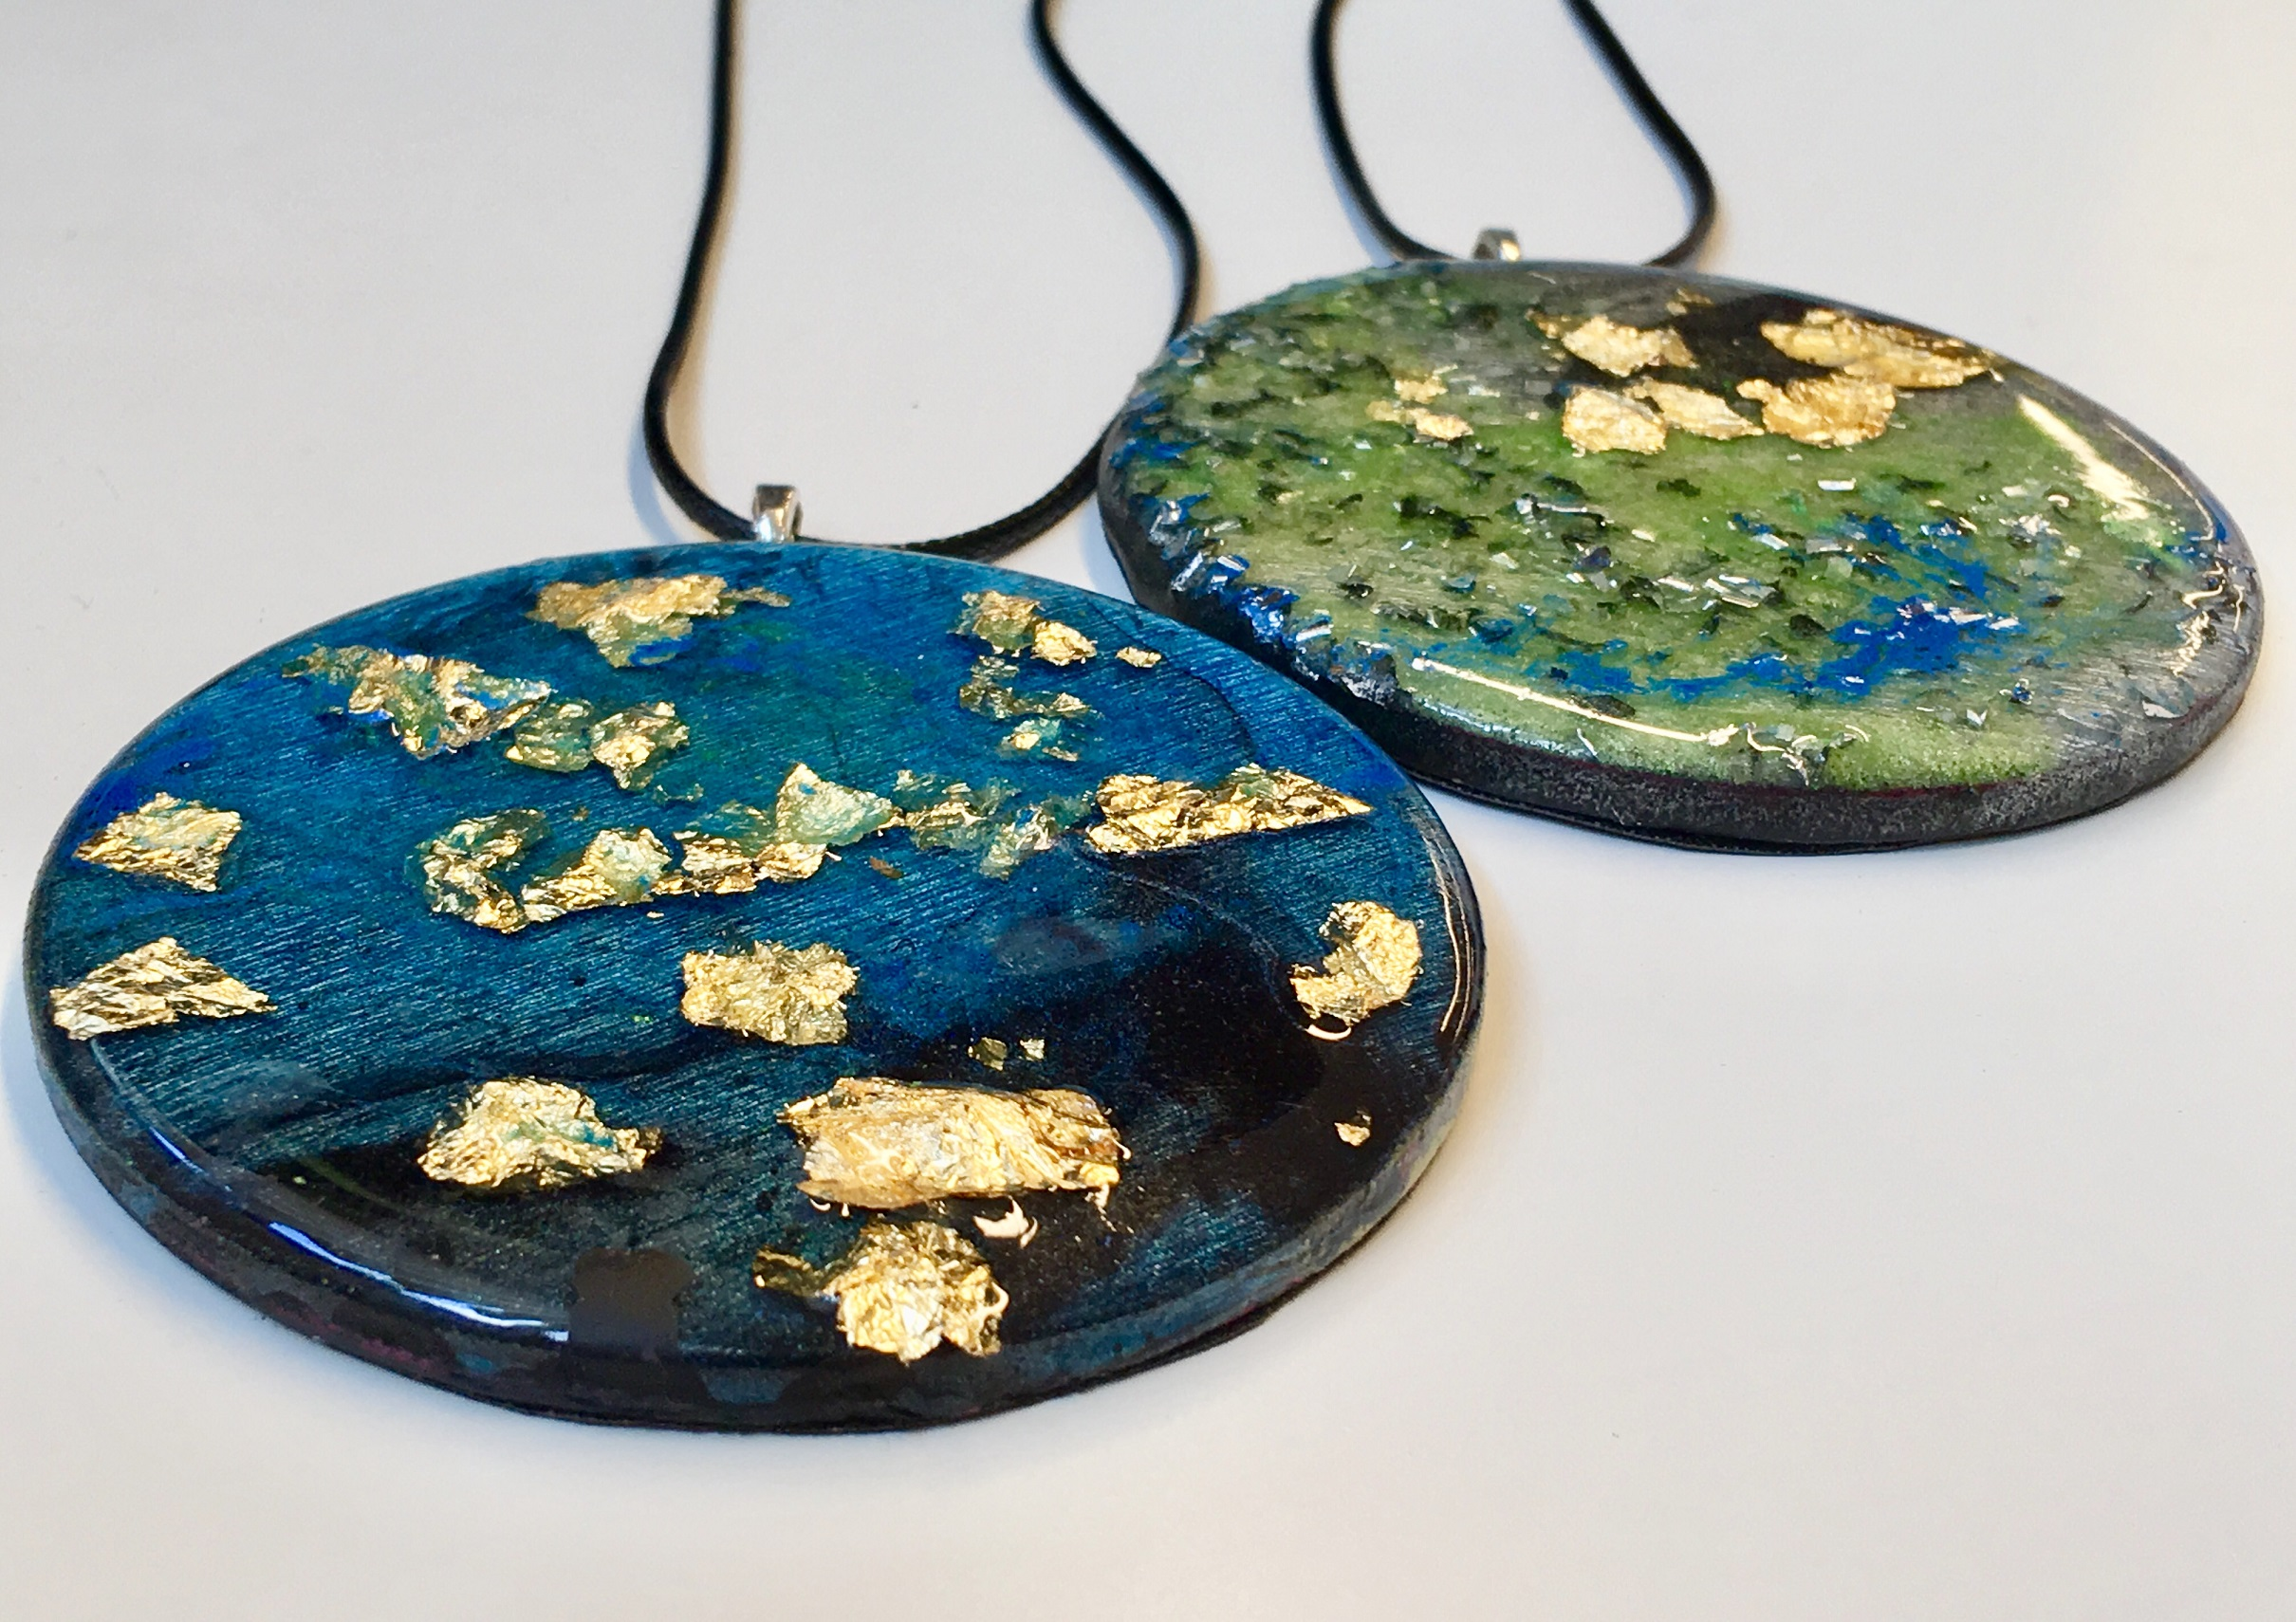 Pendant necklaces by Josie, on sale at The Art House Shop